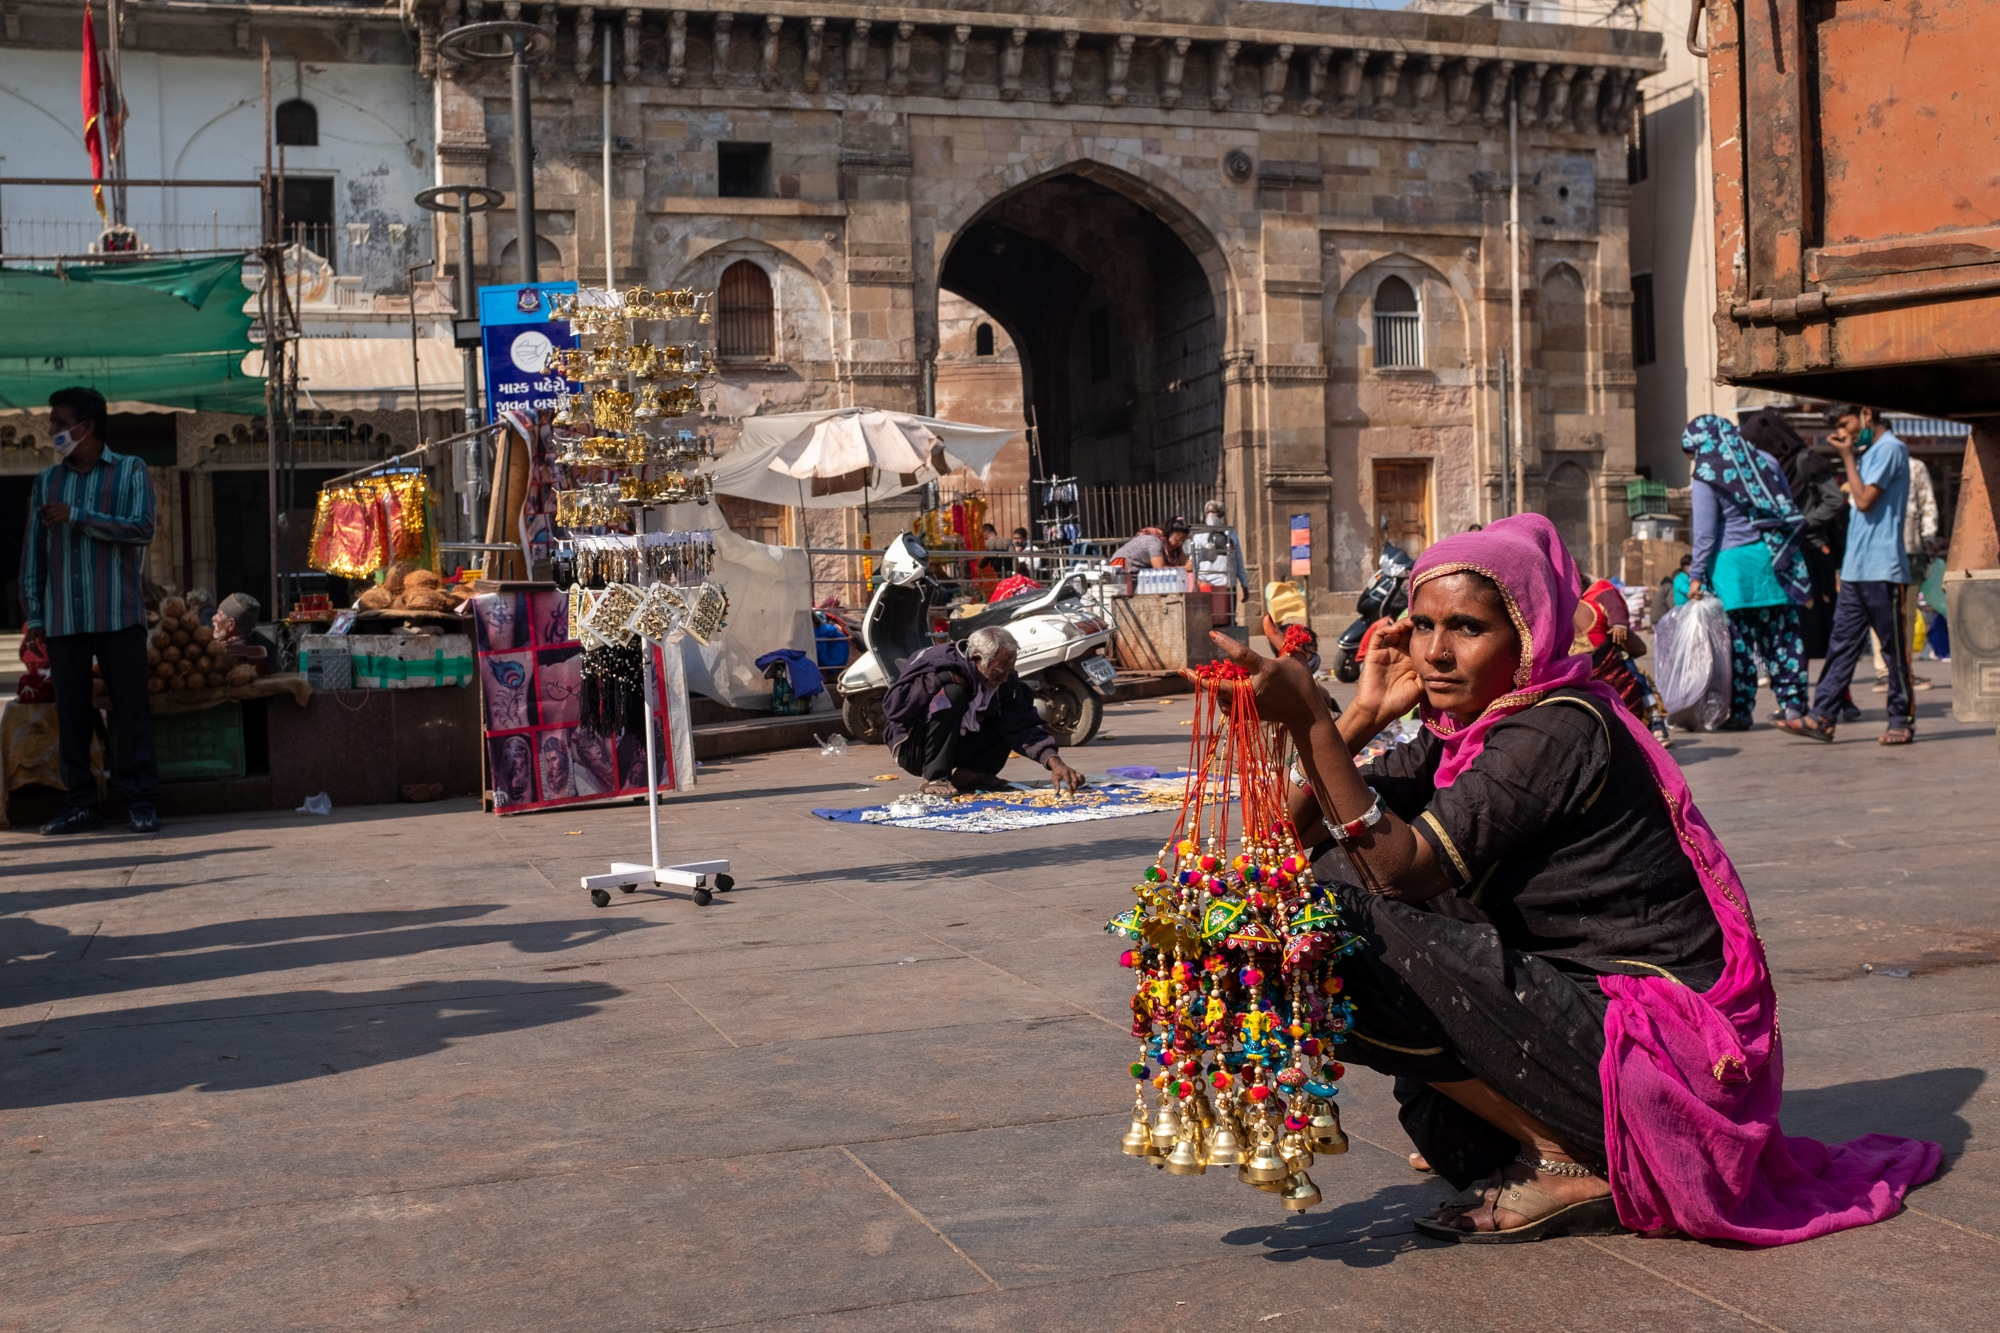 A street vendor selling handmade wind chimes in front of the Bhadra Fort, Ahmedabad.